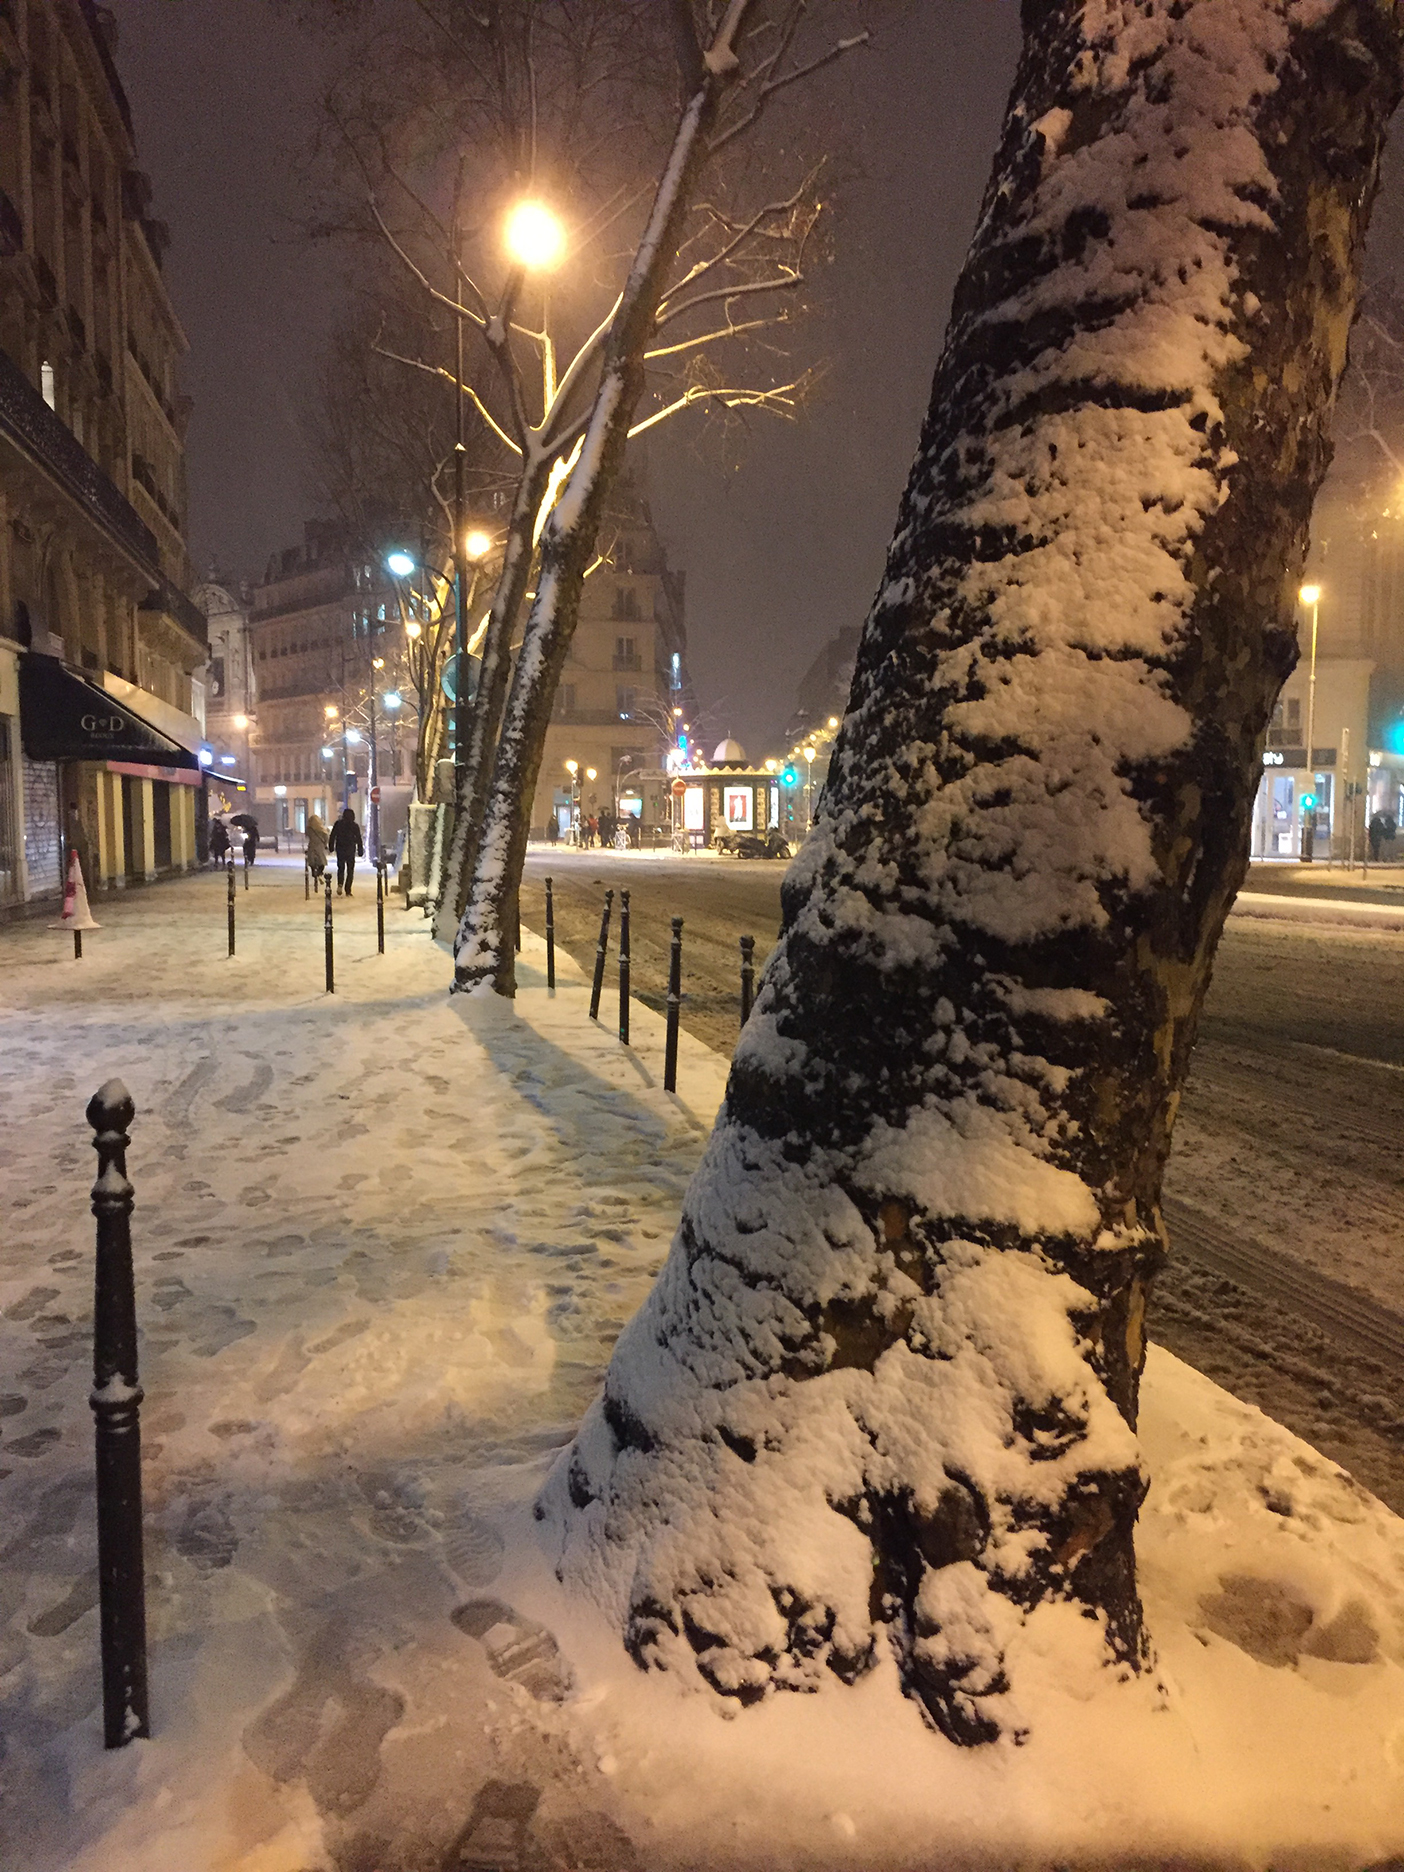 Cold and snowy on rue du Temple